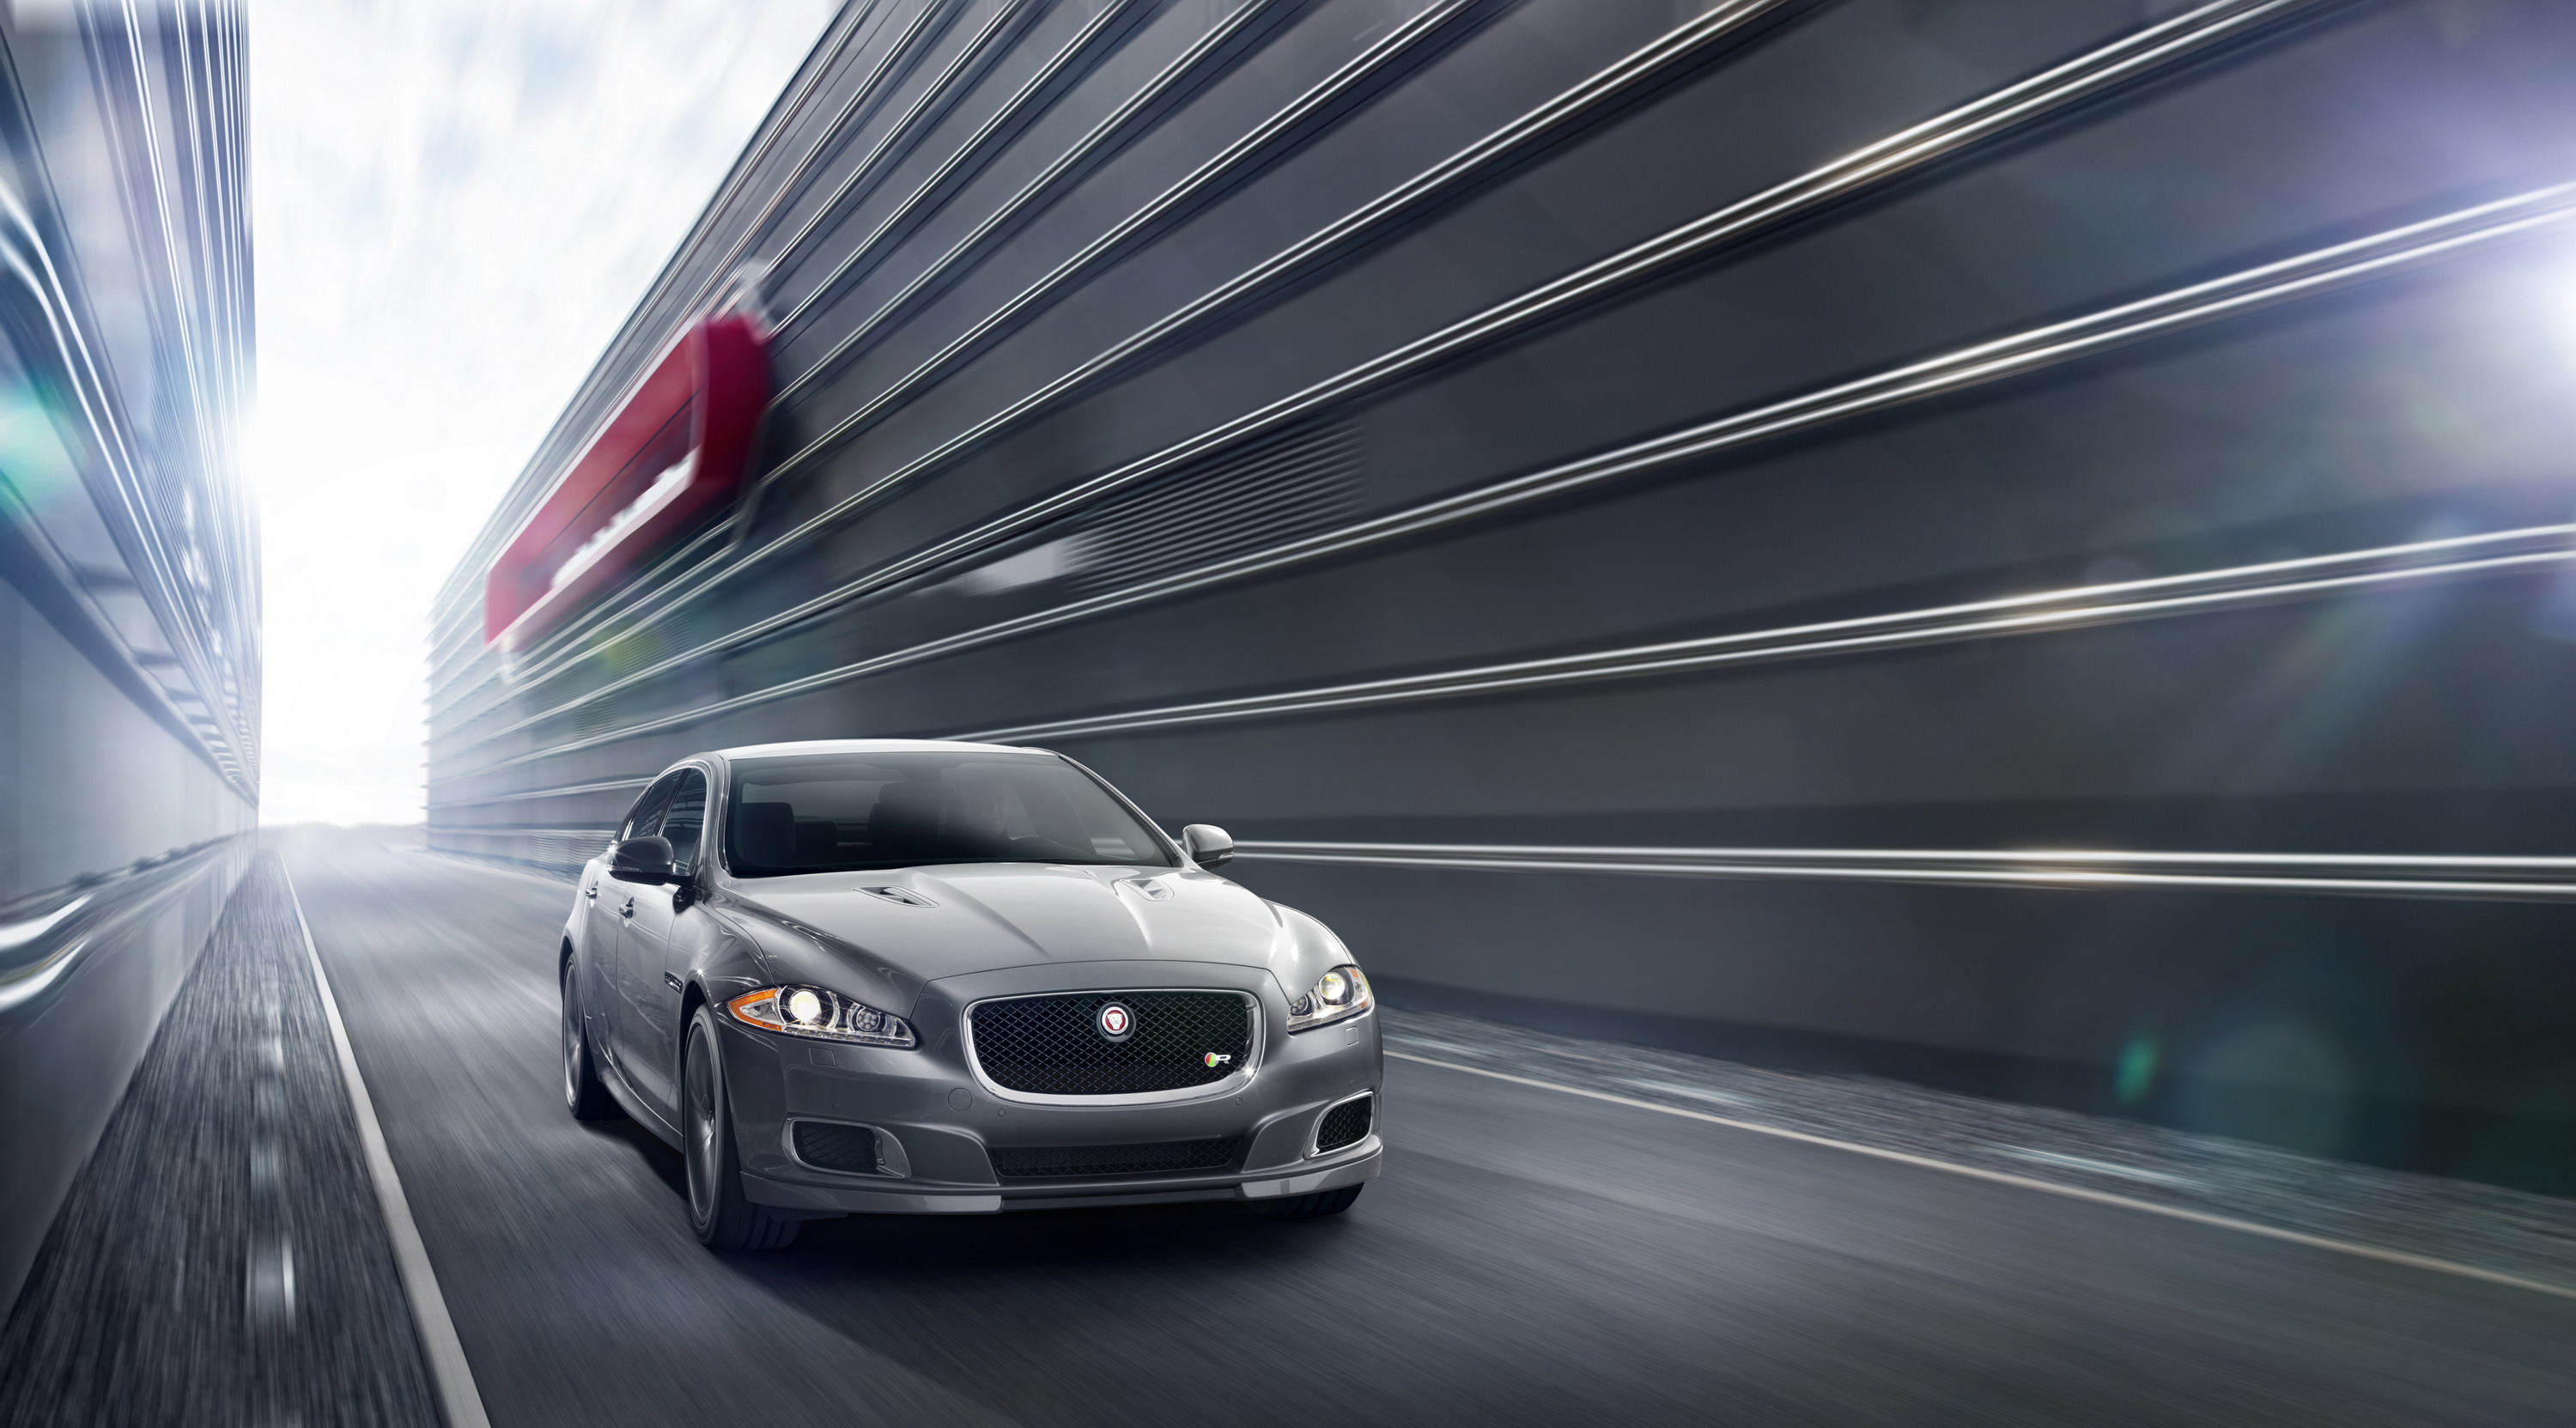 location xj engines leave ultimate jaguar east and new news c middle motoring car